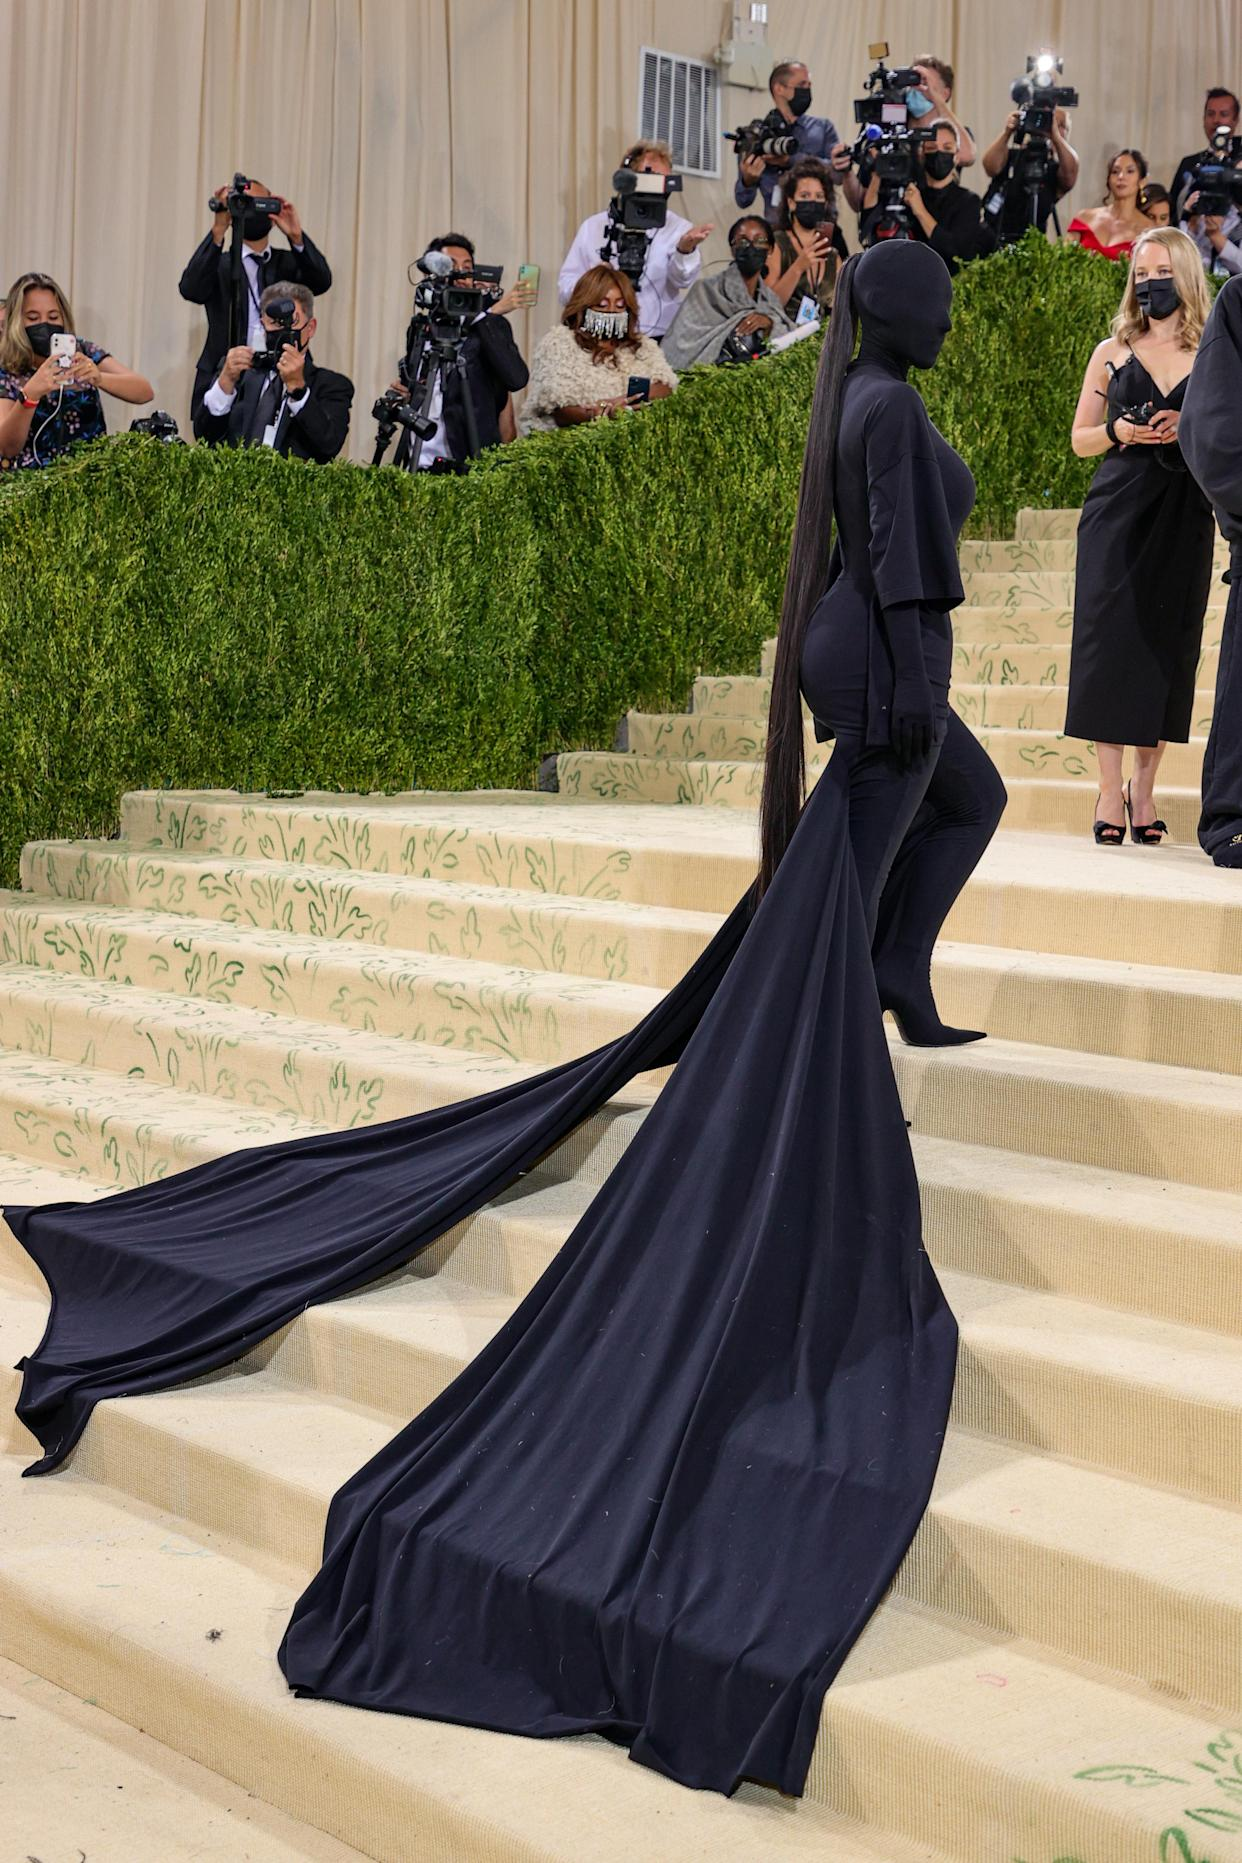 Kim Kardashian attends The 2021 Met Gala Celebrating In America: A Lexicon Of Fashion at Metropolitan Museum of Art on September 13, 2021 in New York City. (Getty Images)